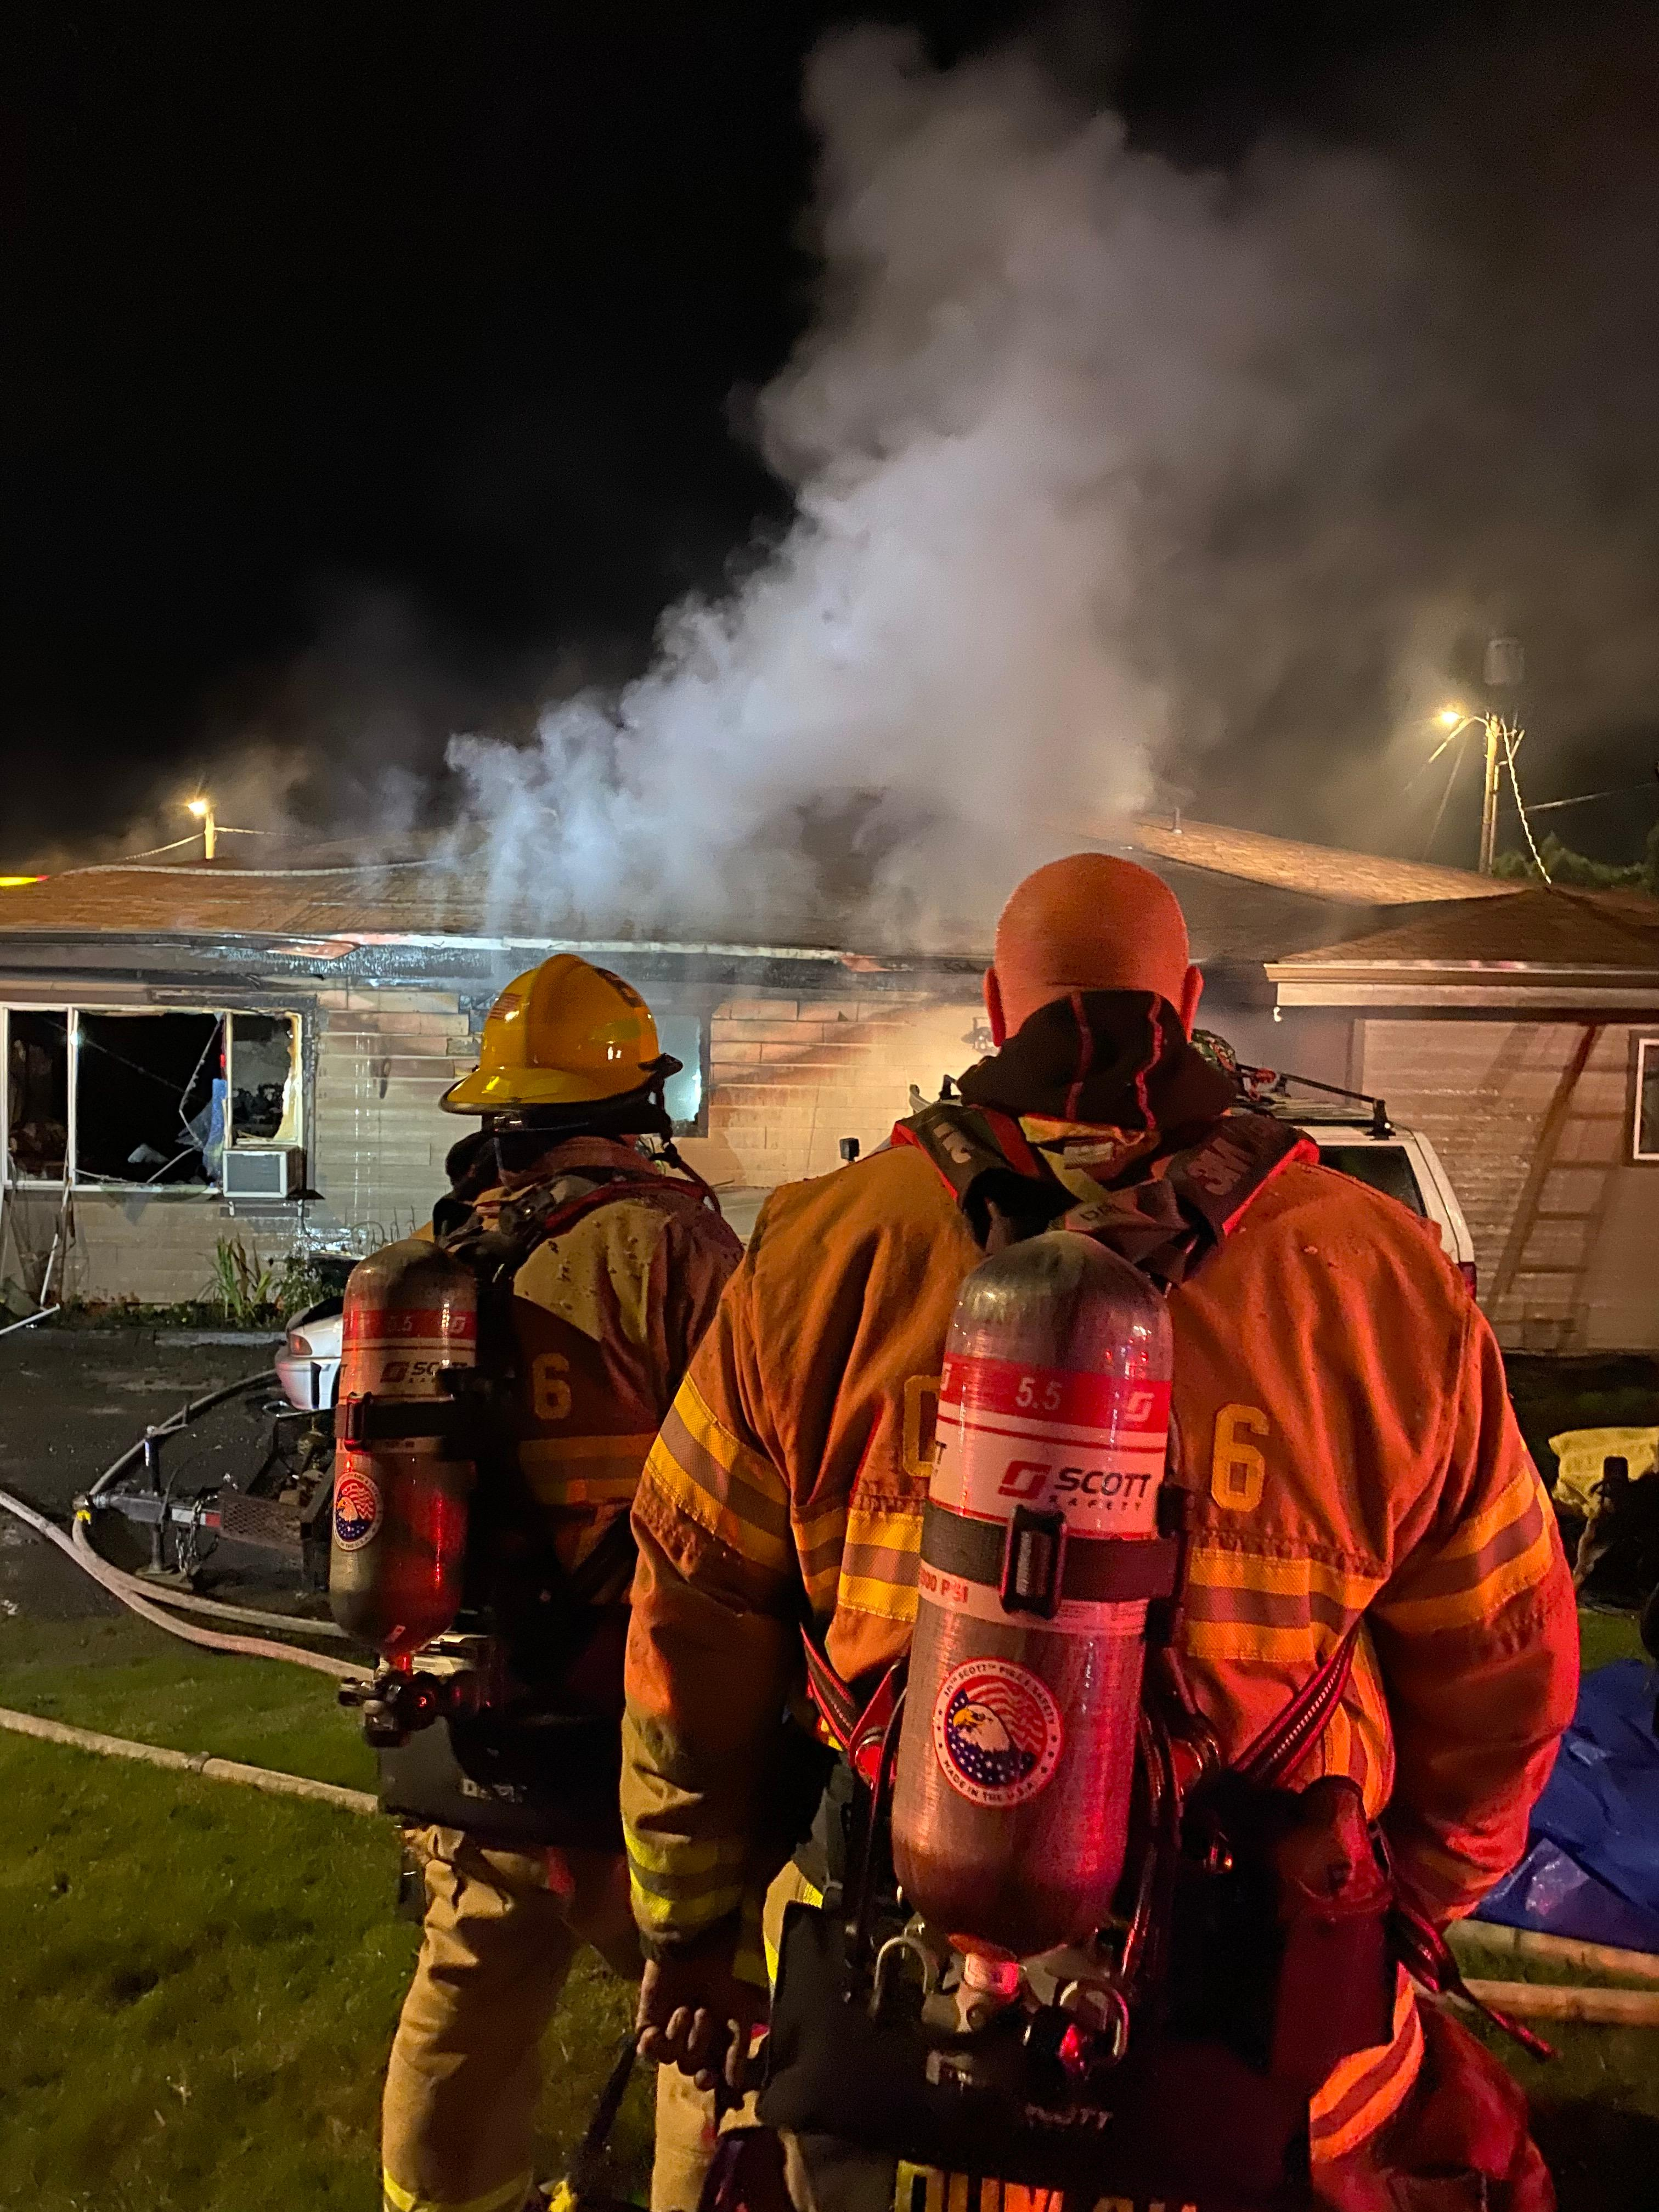 Seven people displaced after apartment fire in Hazel Dell (Courtesy: Clark County Fire)<p></p>